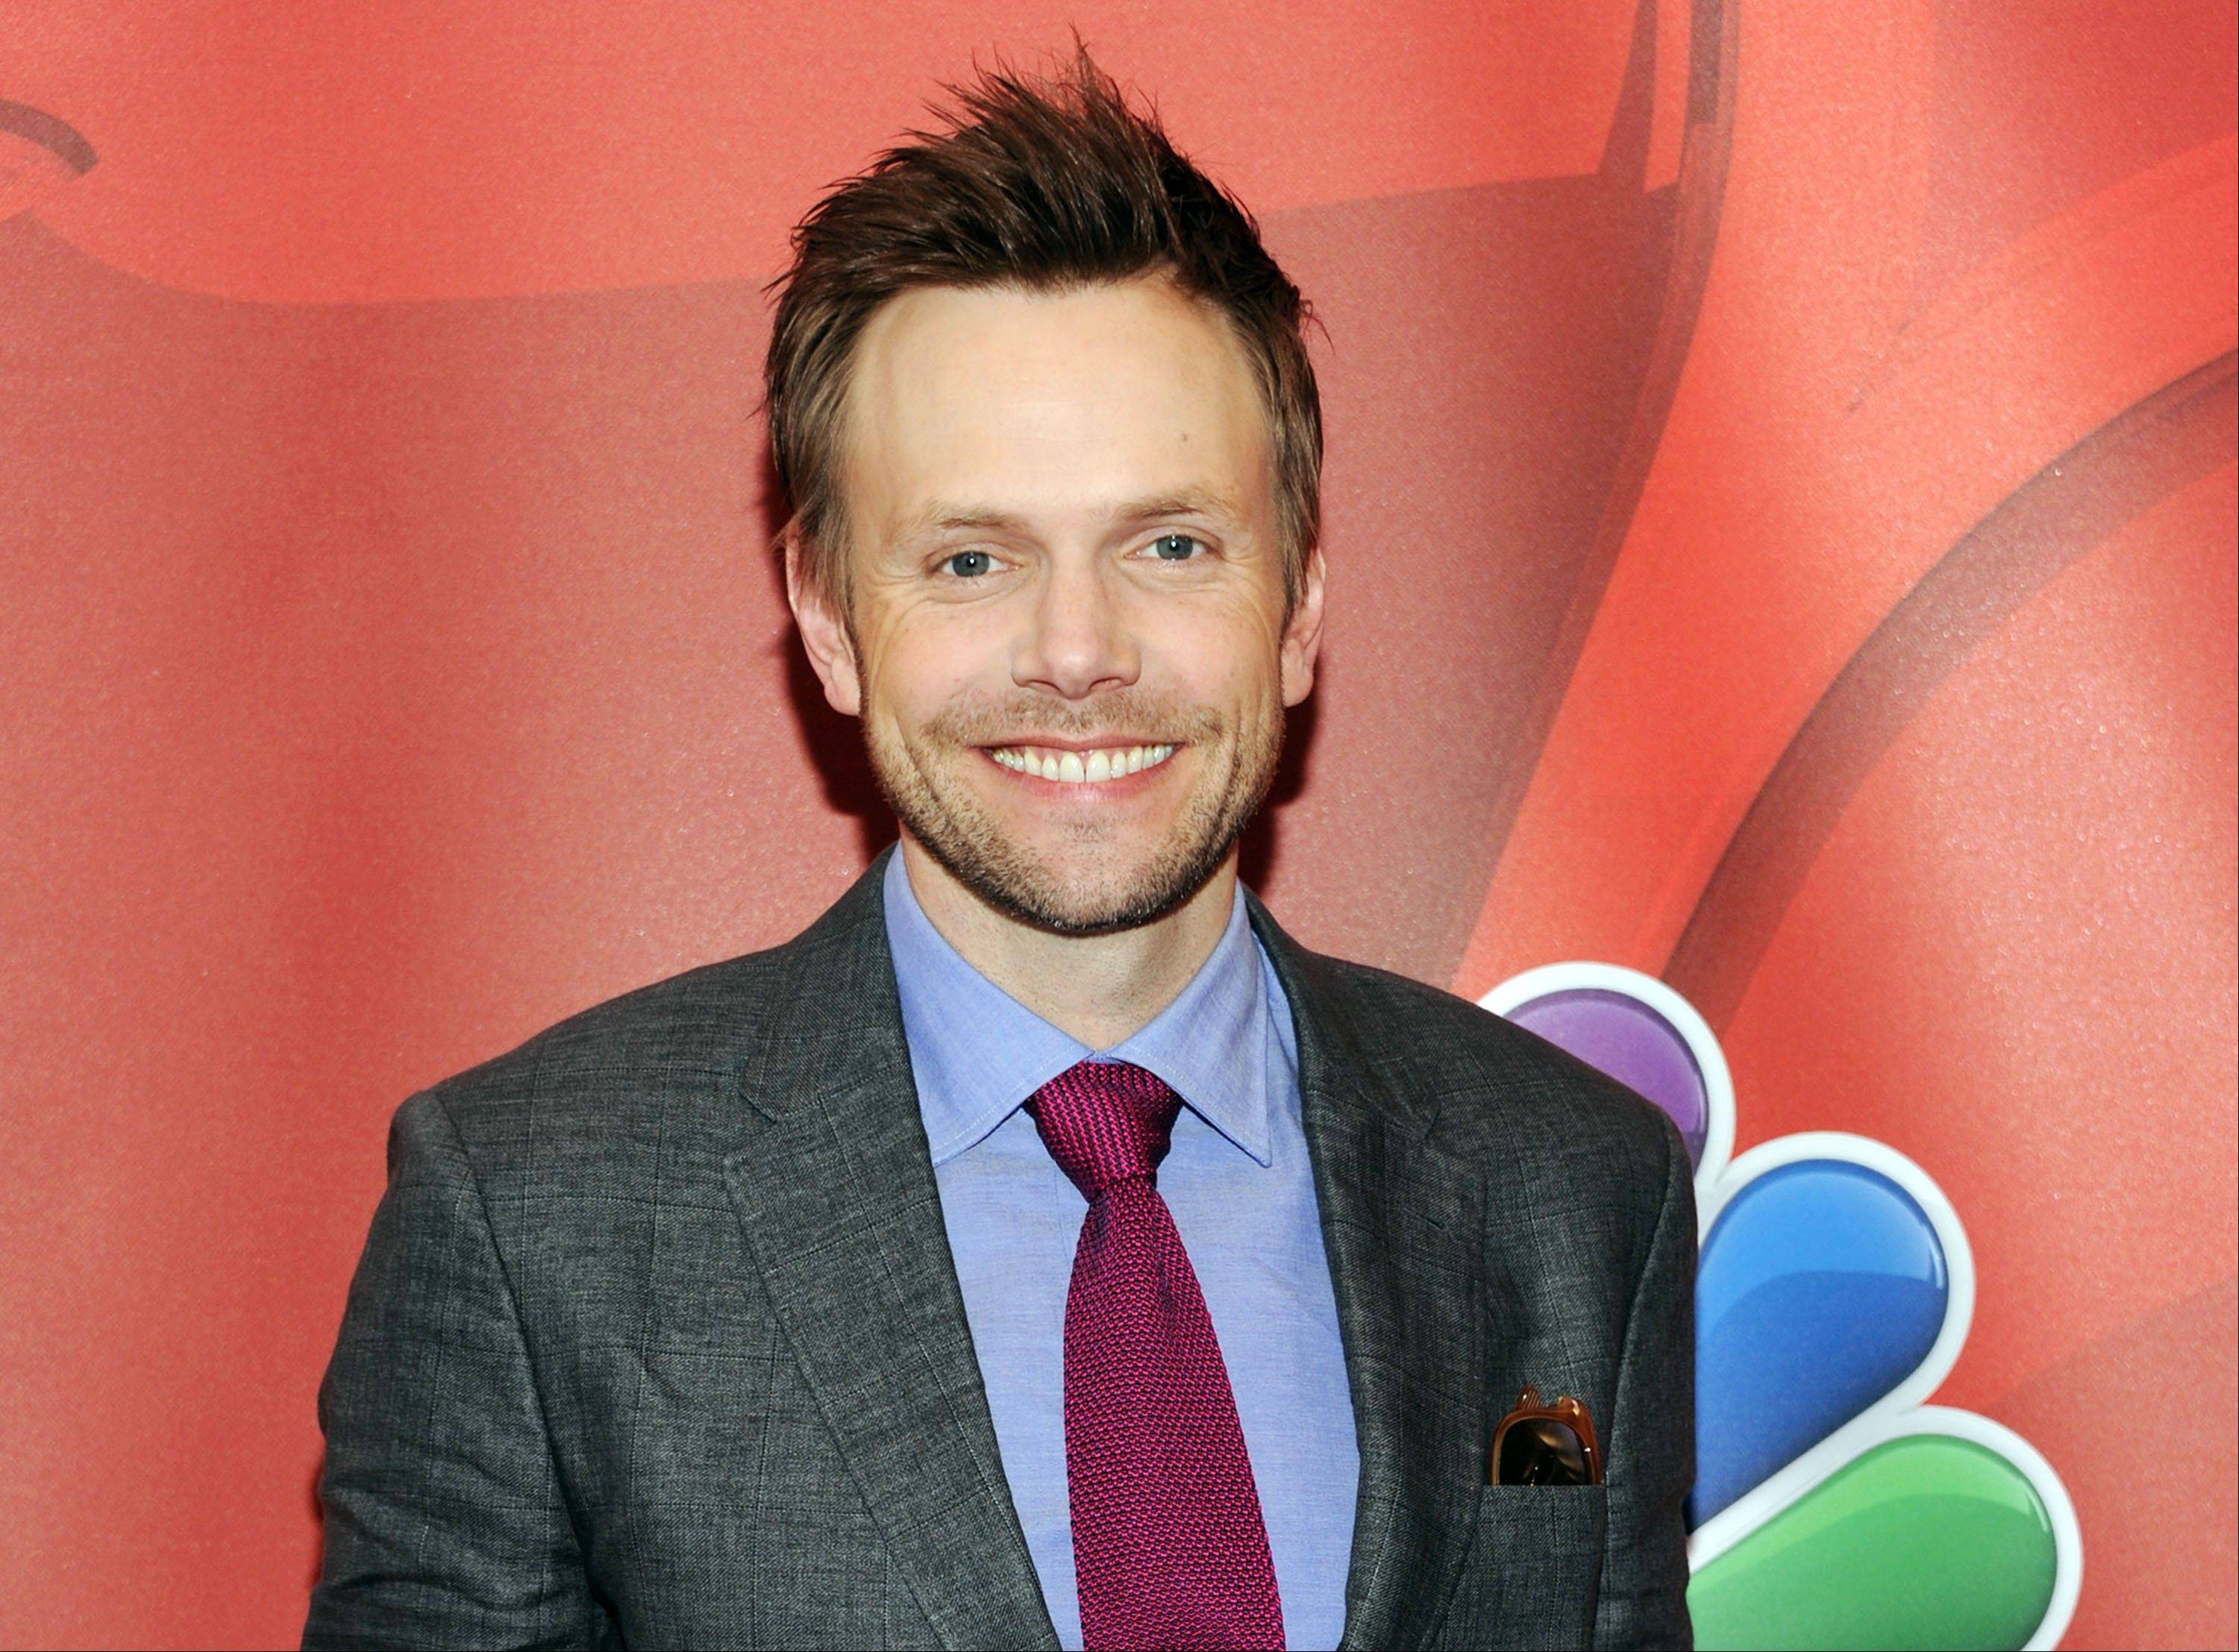 Actor and TV host Joel McHale, who hosts �Talk Soup,� on E! and stars in the NBC comedy �Community,� will also star in the upcoming supernatural thriller �Beware the Night.�